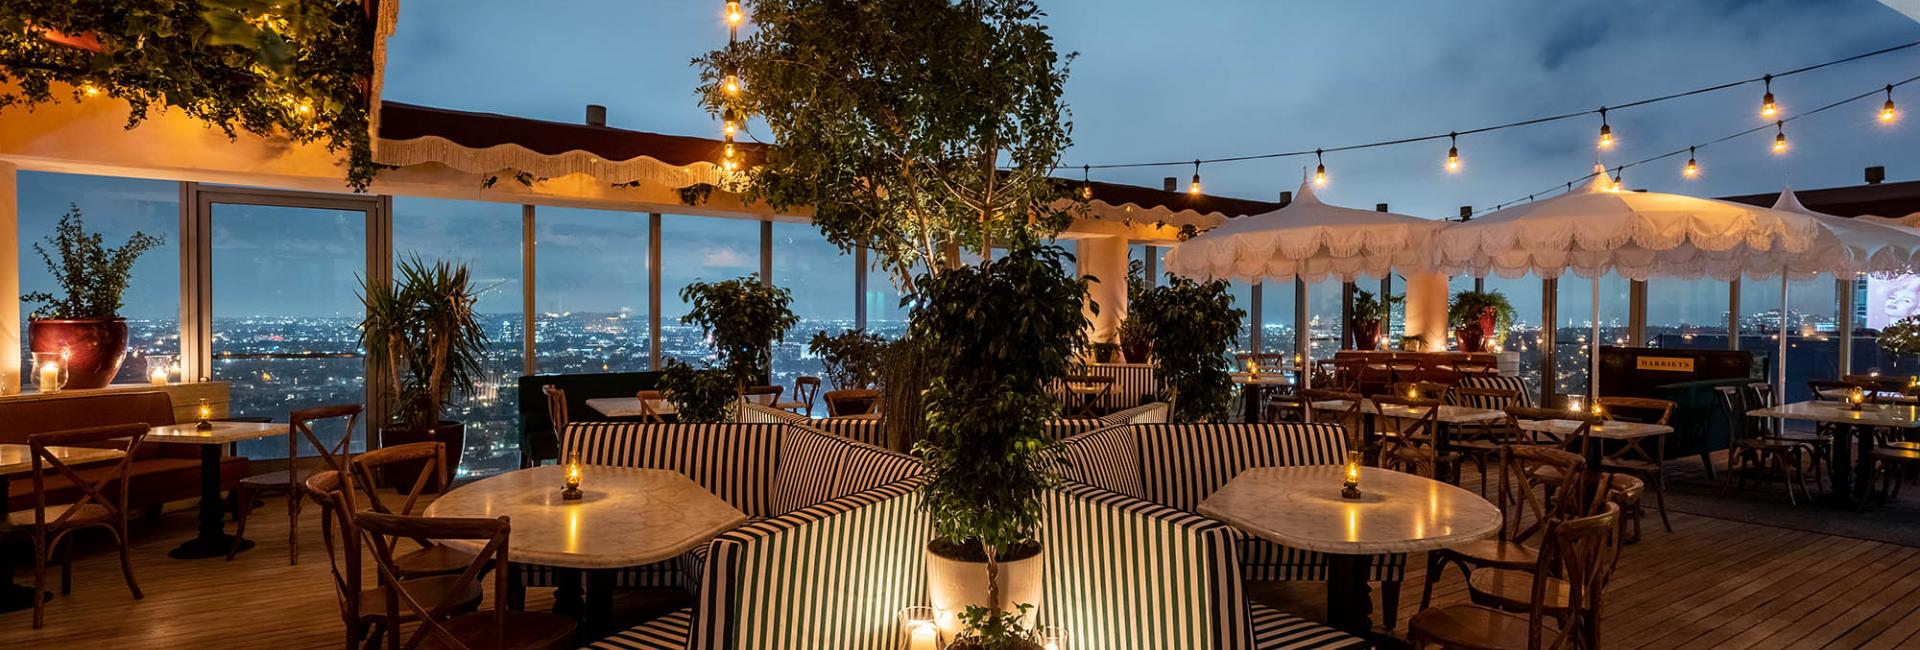 Harriets rooftop bar west hollywood